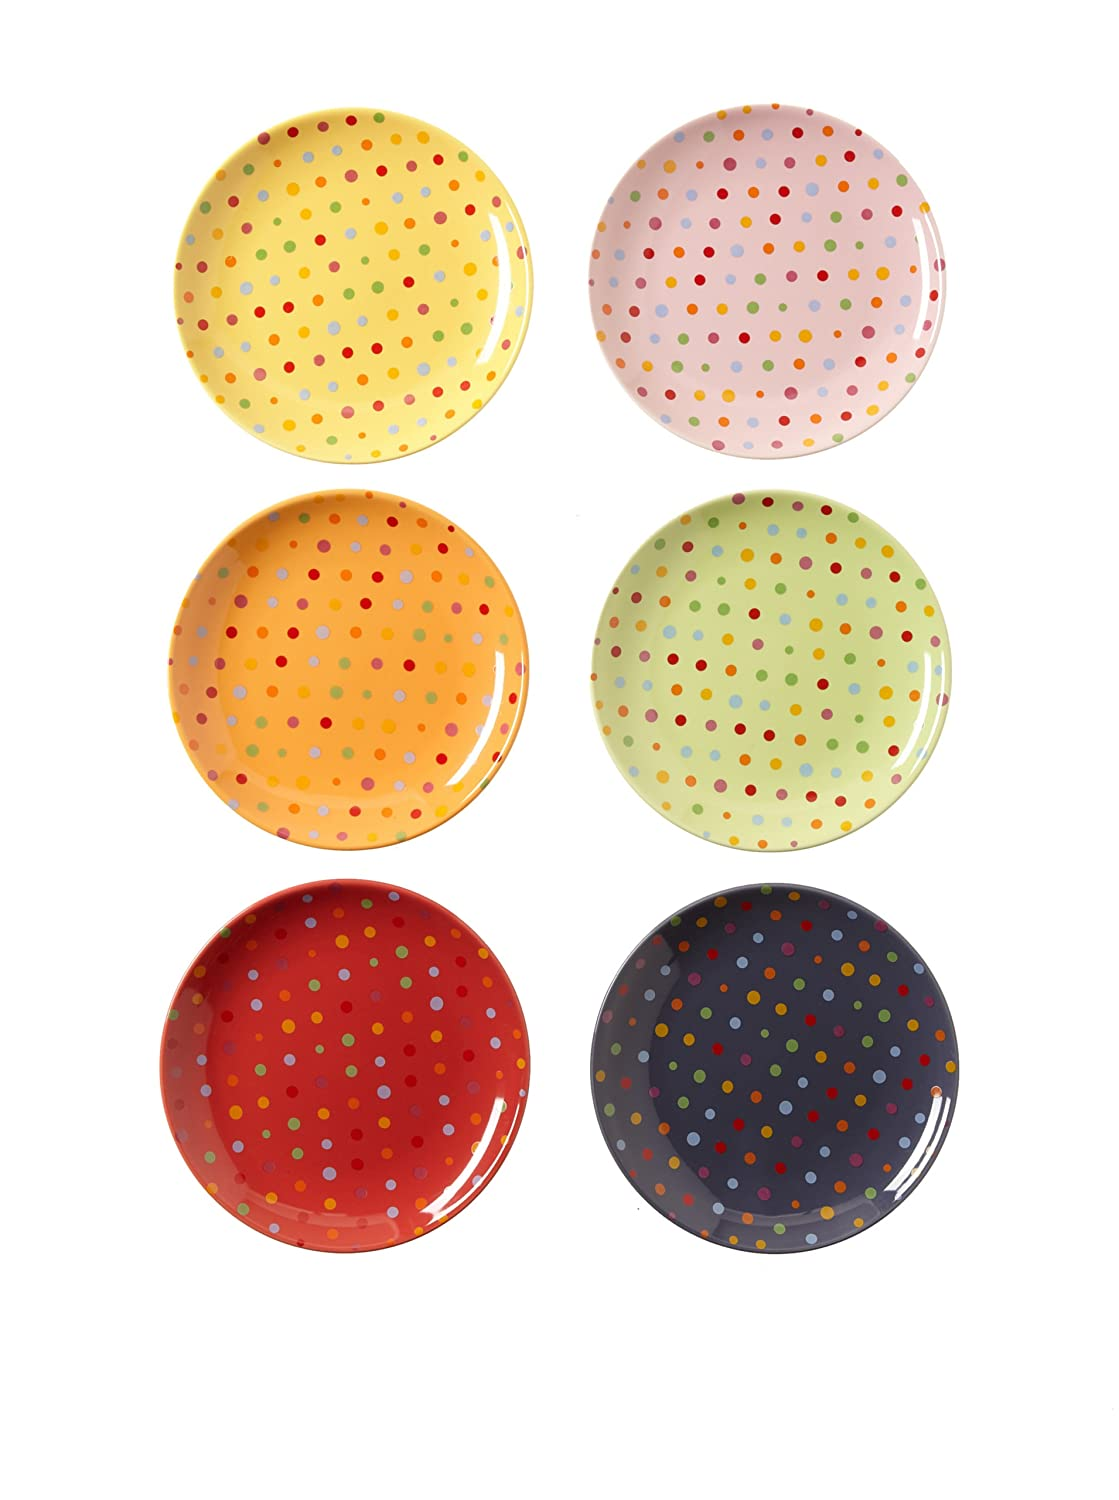 Amazon.com | Classic Coffee \u0026 Tea Polka Dot Dessert Plates Set of 6 Appetizer Plates Accent Plates  sc 1 st  Amazon.com & Amazon.com | Classic Coffee \u0026 Tea Polka Dot Dessert Plates Set of 6 ...